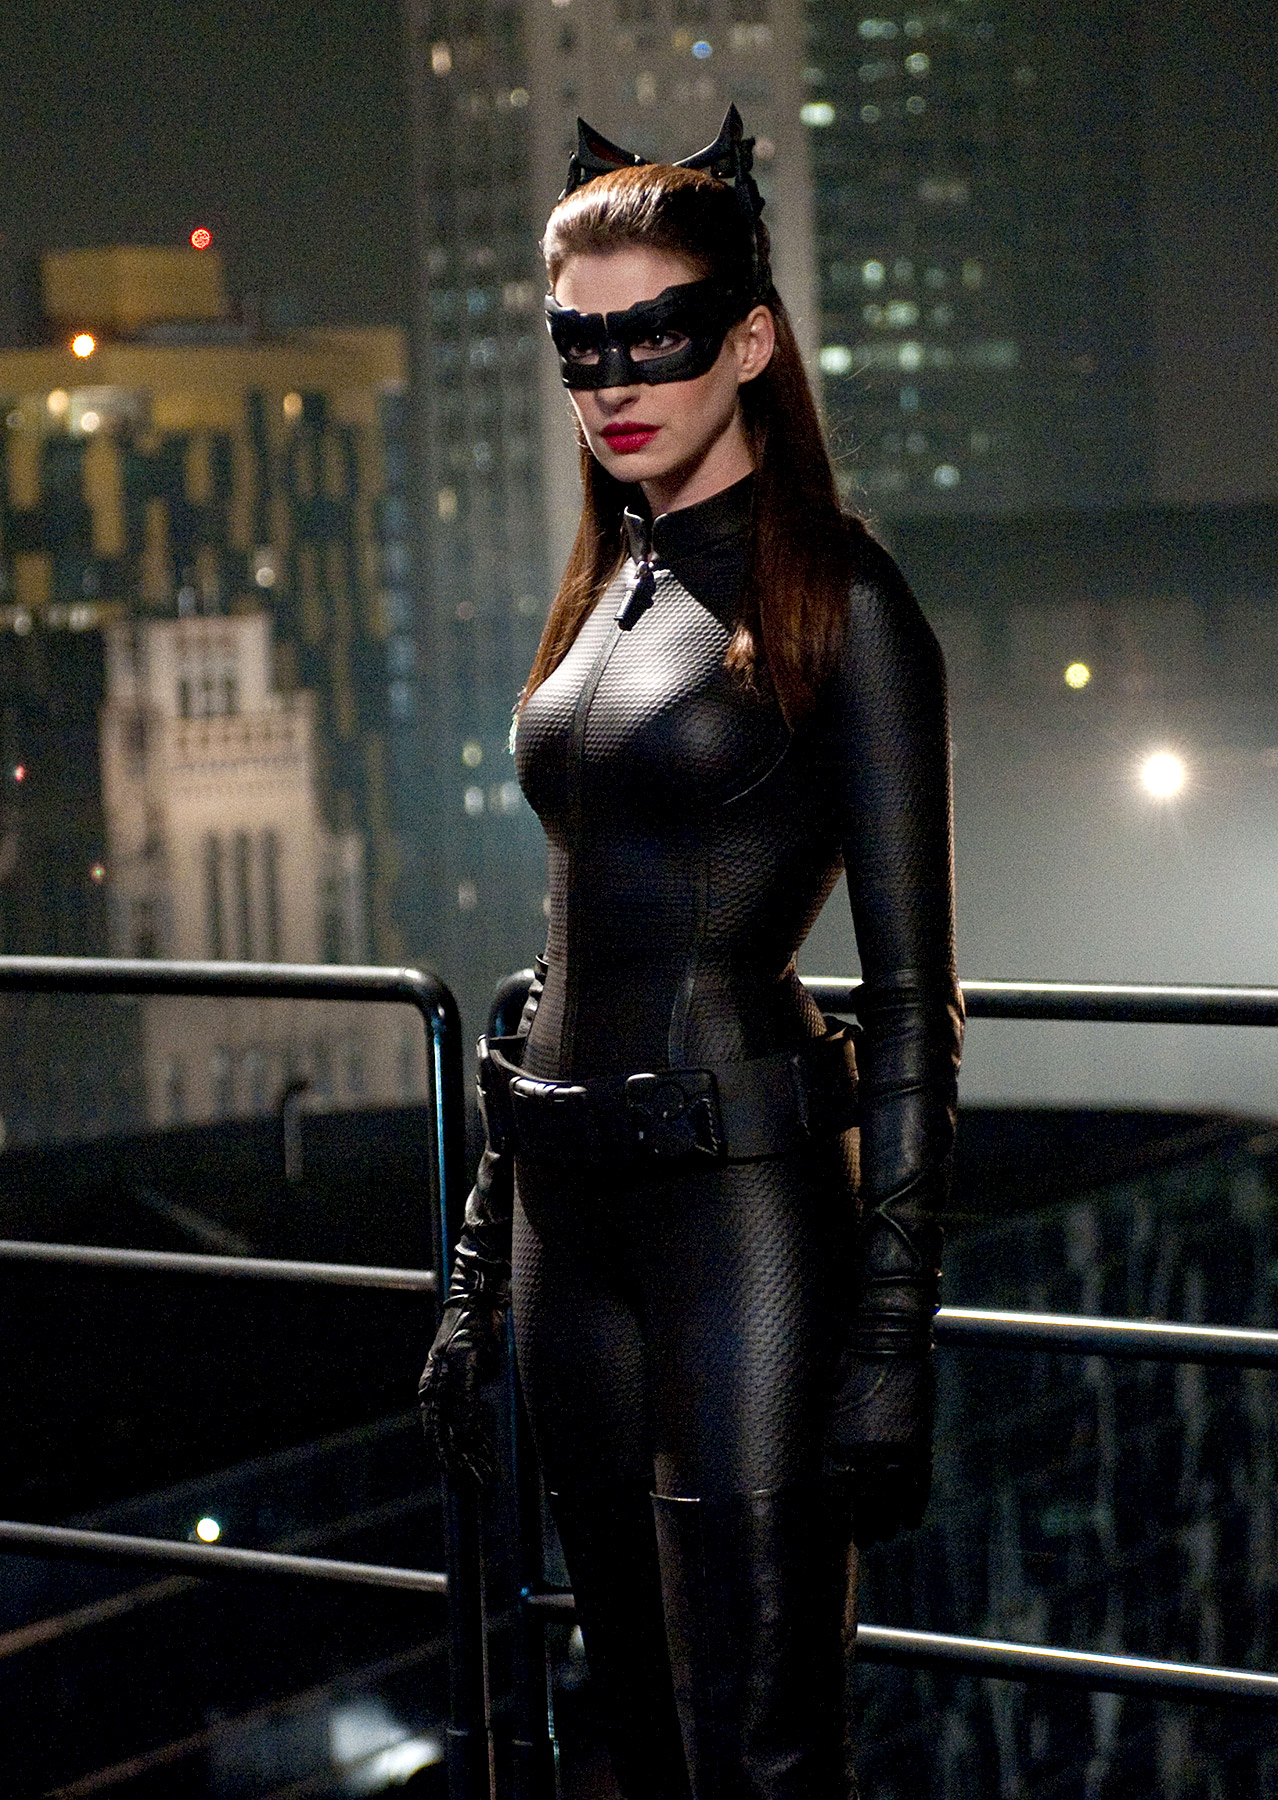 In 2012's The Dark Knight Rises , Oscar winner Anne Hathaway got purr-fectly catty as Selina Kyle/Catwoman.